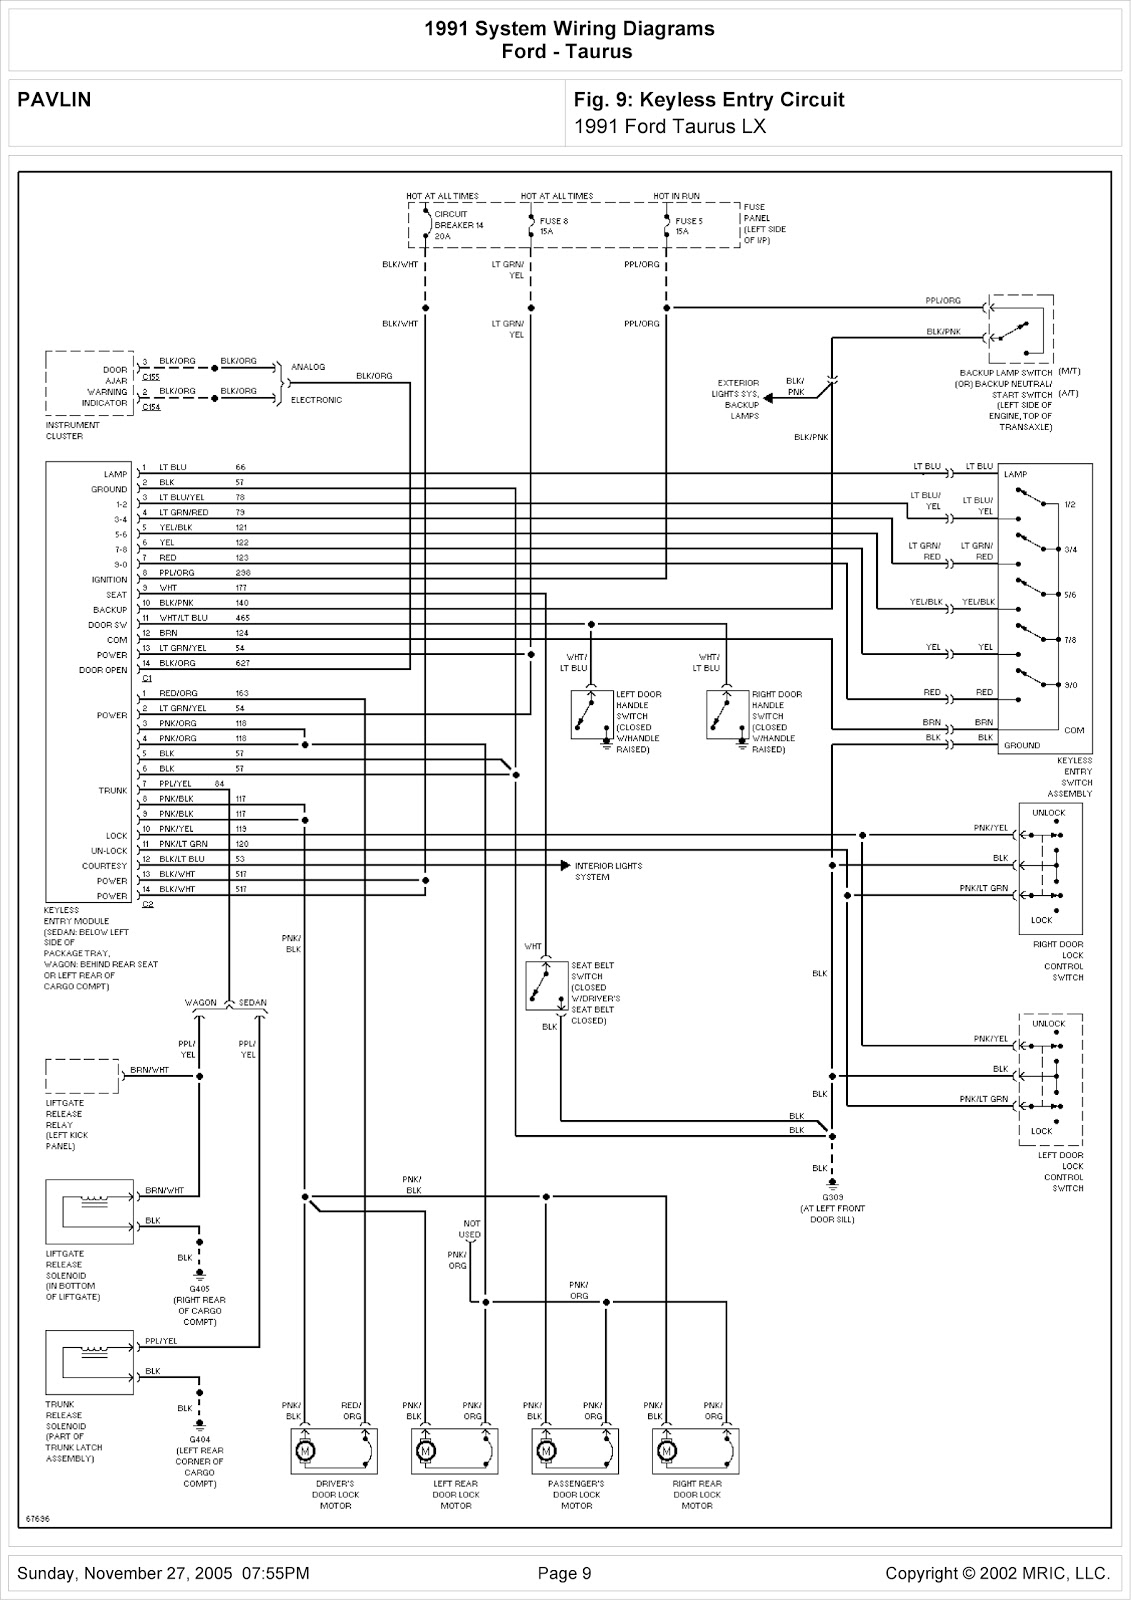 1994 Ford Taurus Wiring Diagram Wiring Diagrams Panel Panel Chatteriedelavalleedufelin Fr